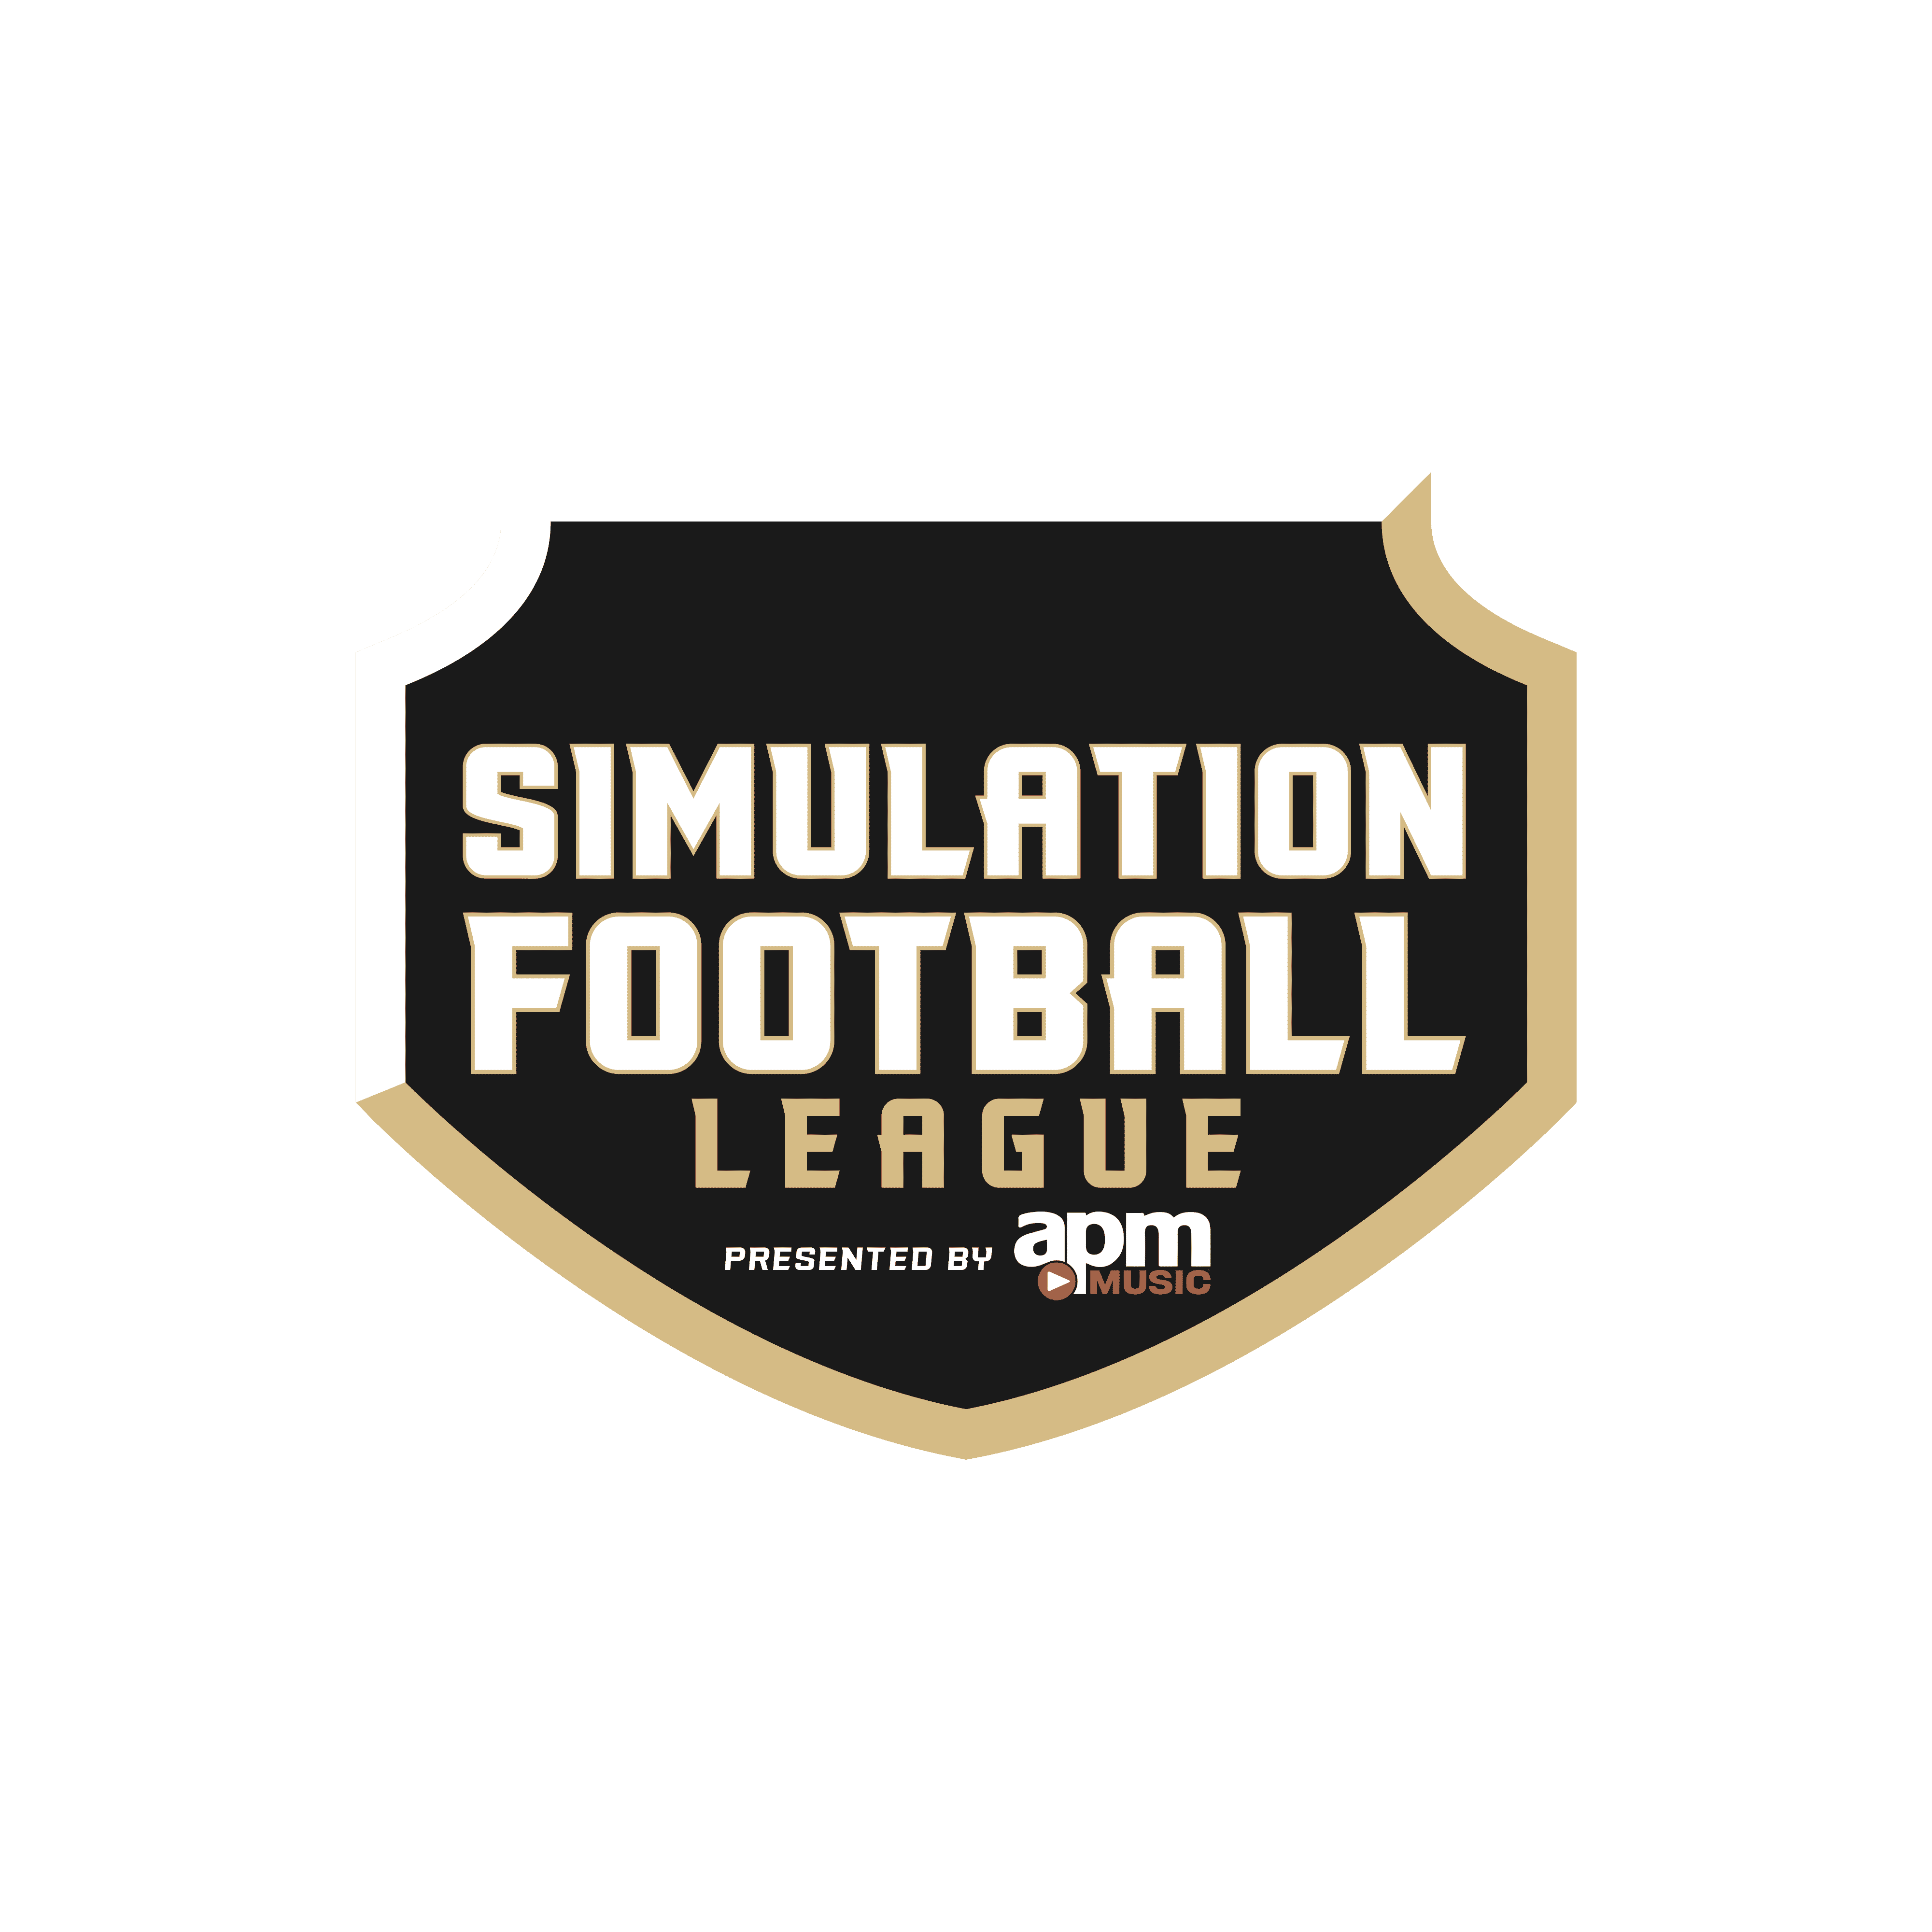 Simulation Football League